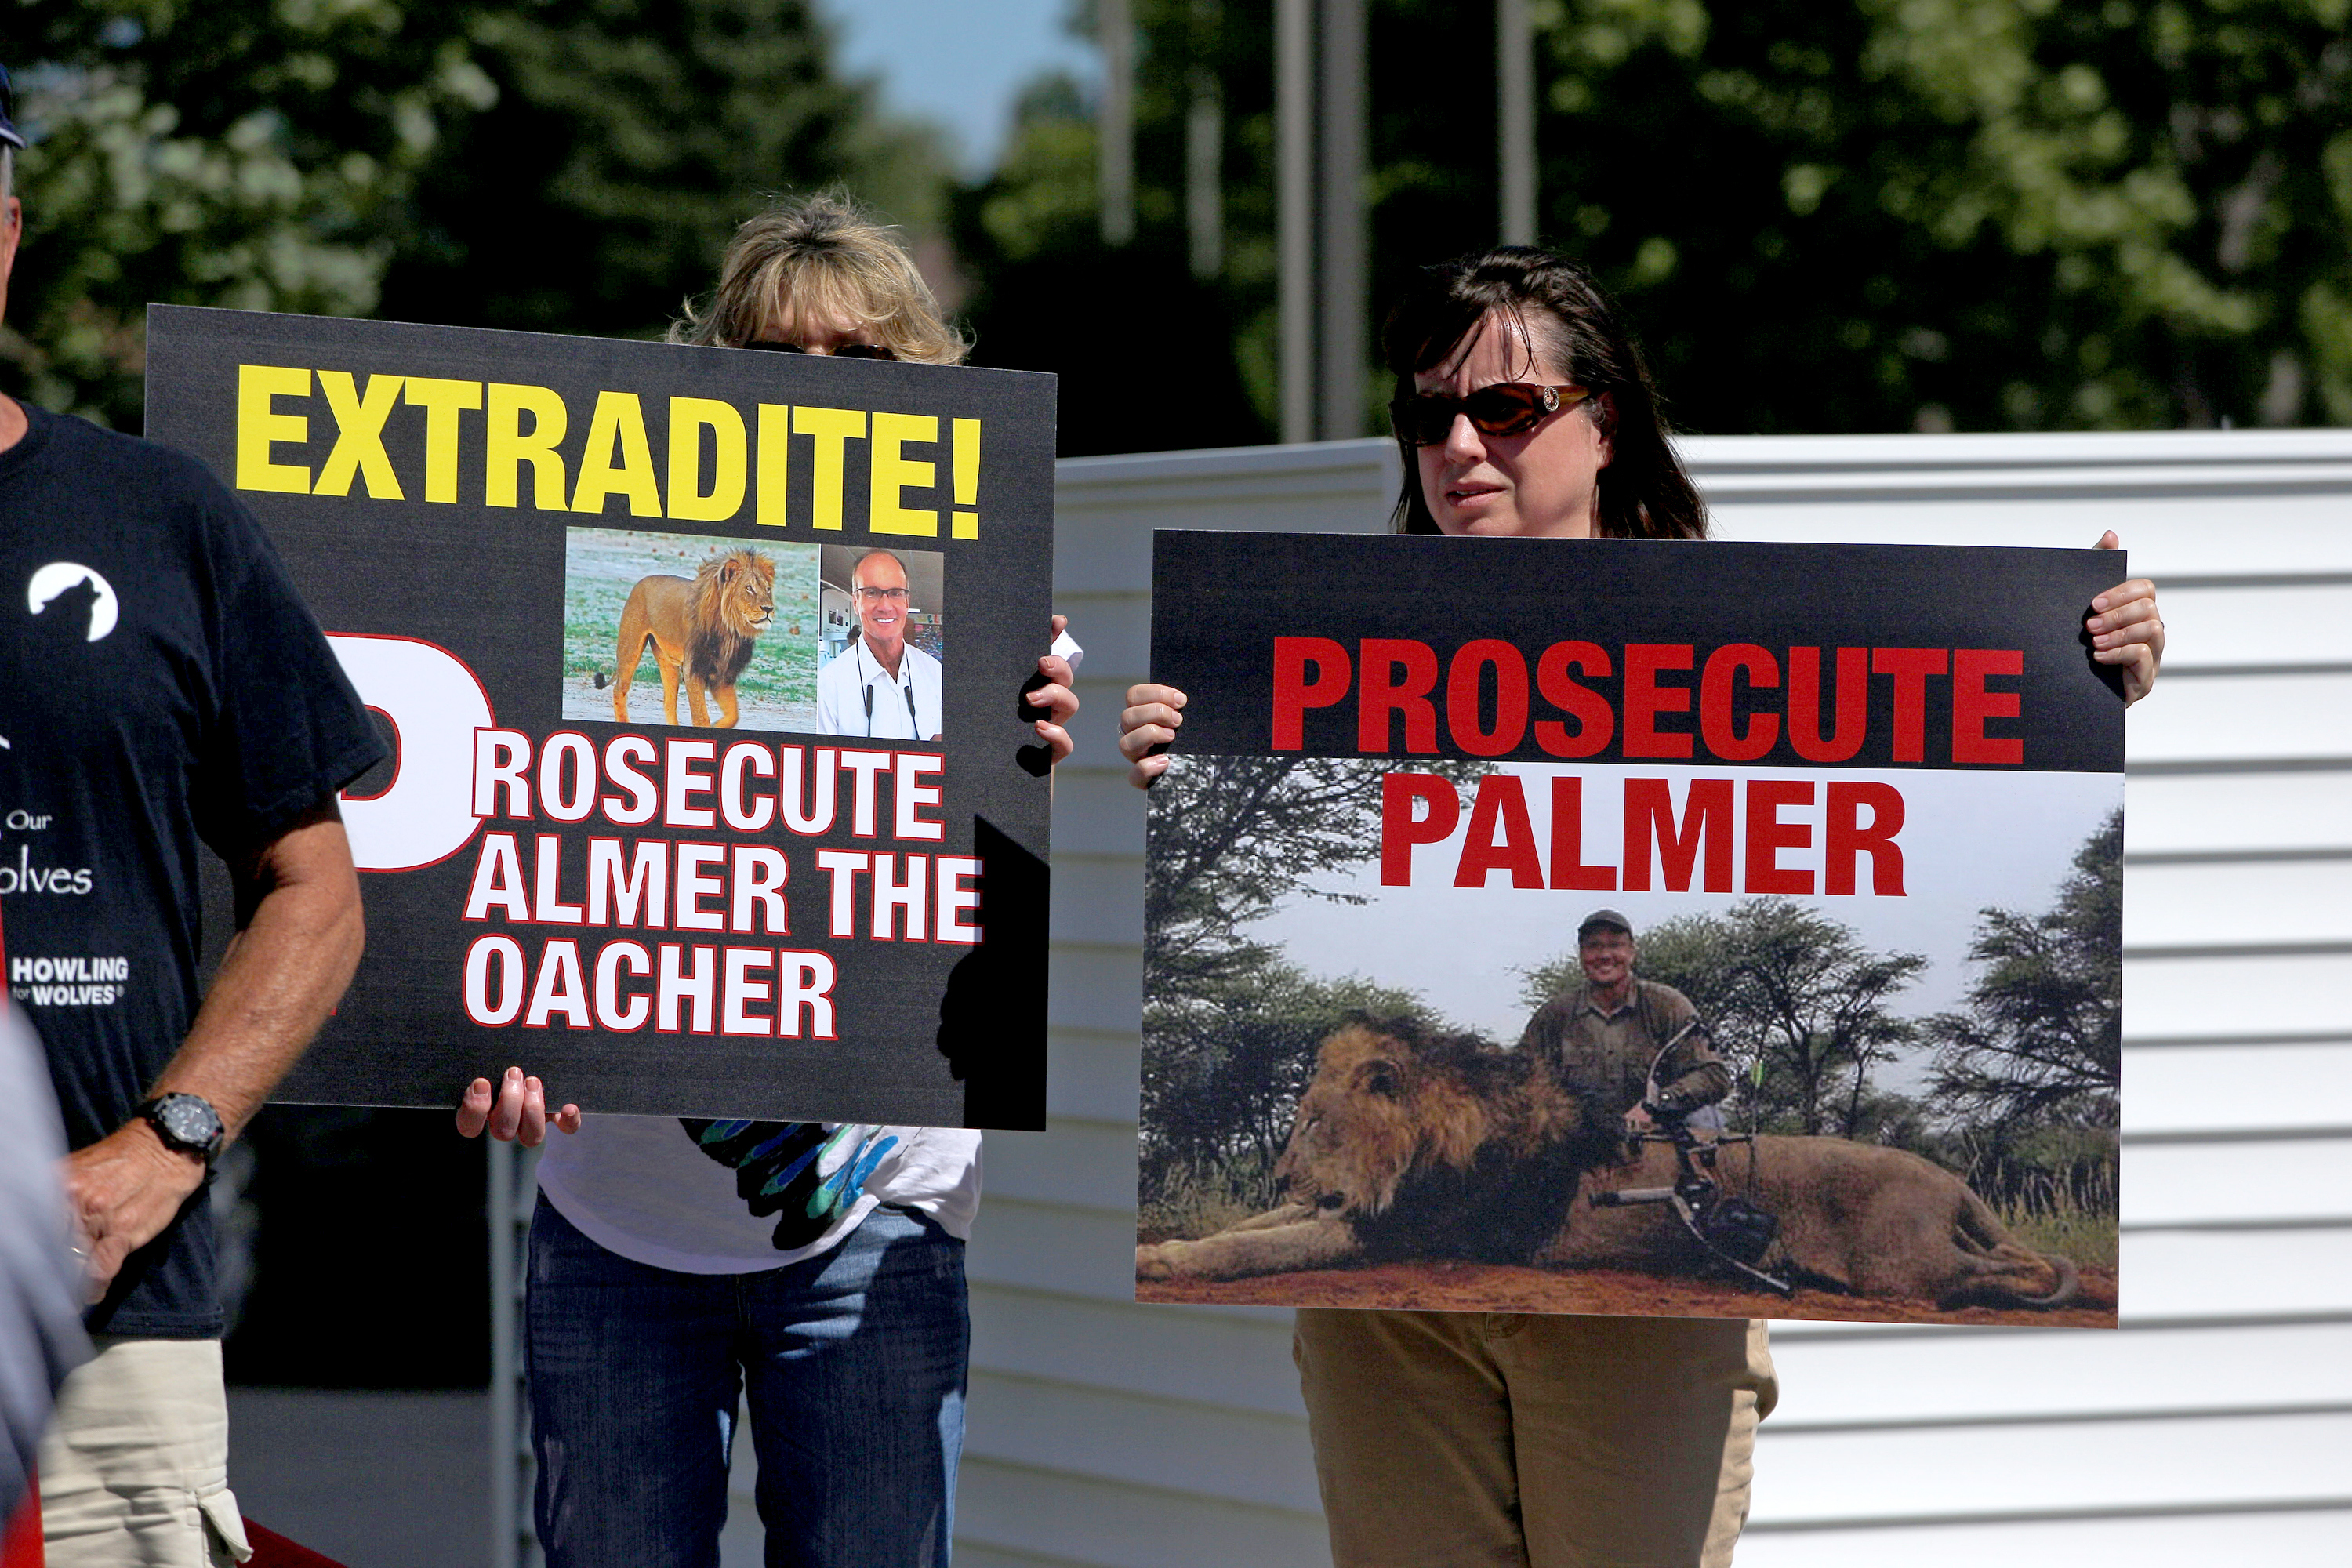 Protesters outside Palmer's office in Minnesota. (Getty)